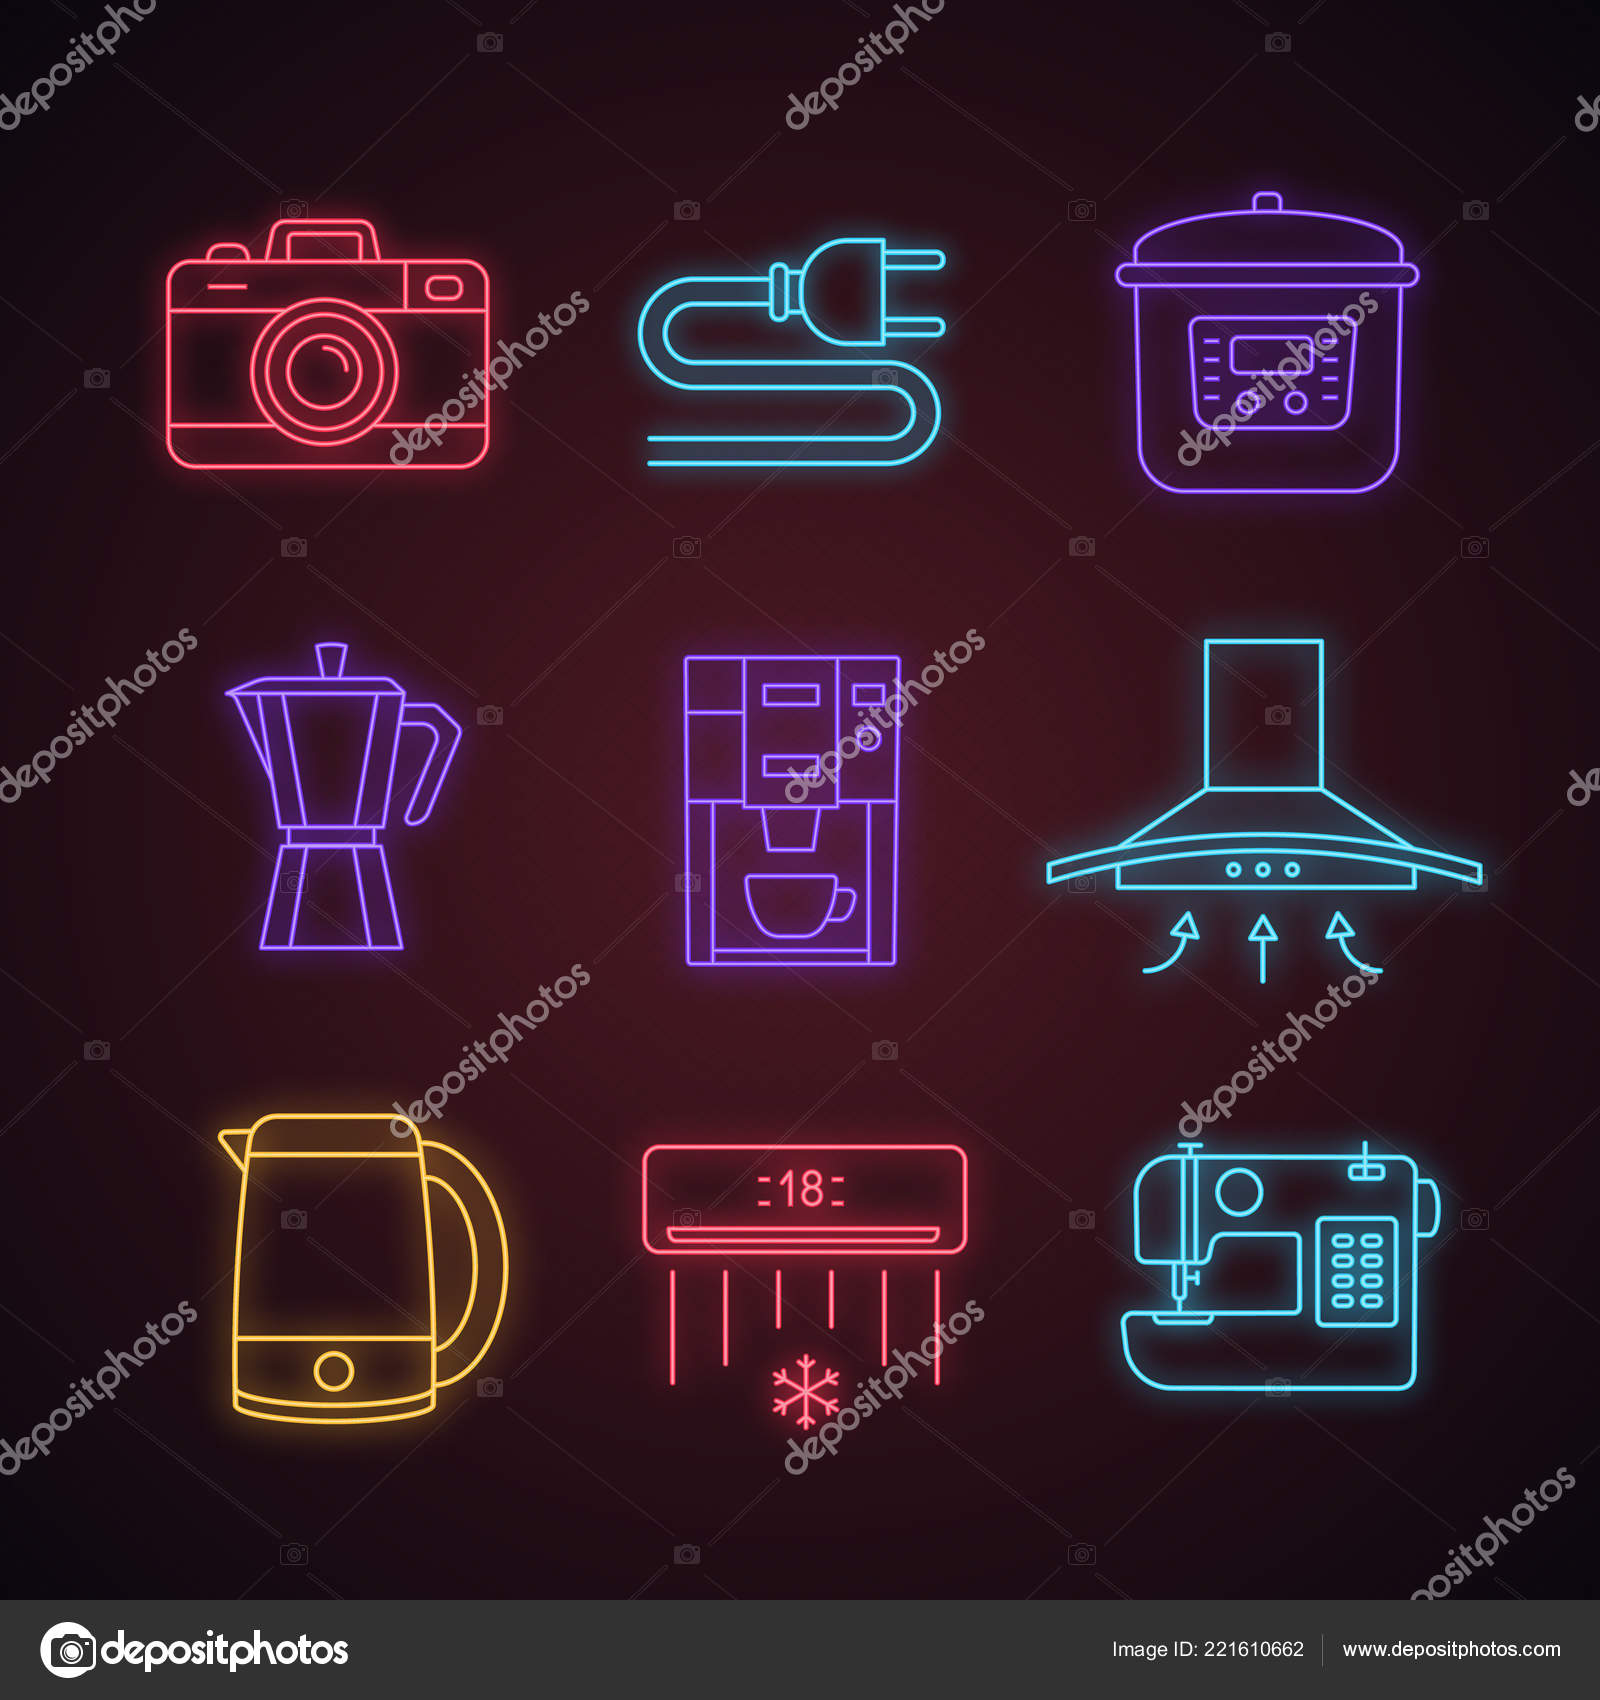 hight resolution of household appliance neon light icons set photo camera wire plug stock vector